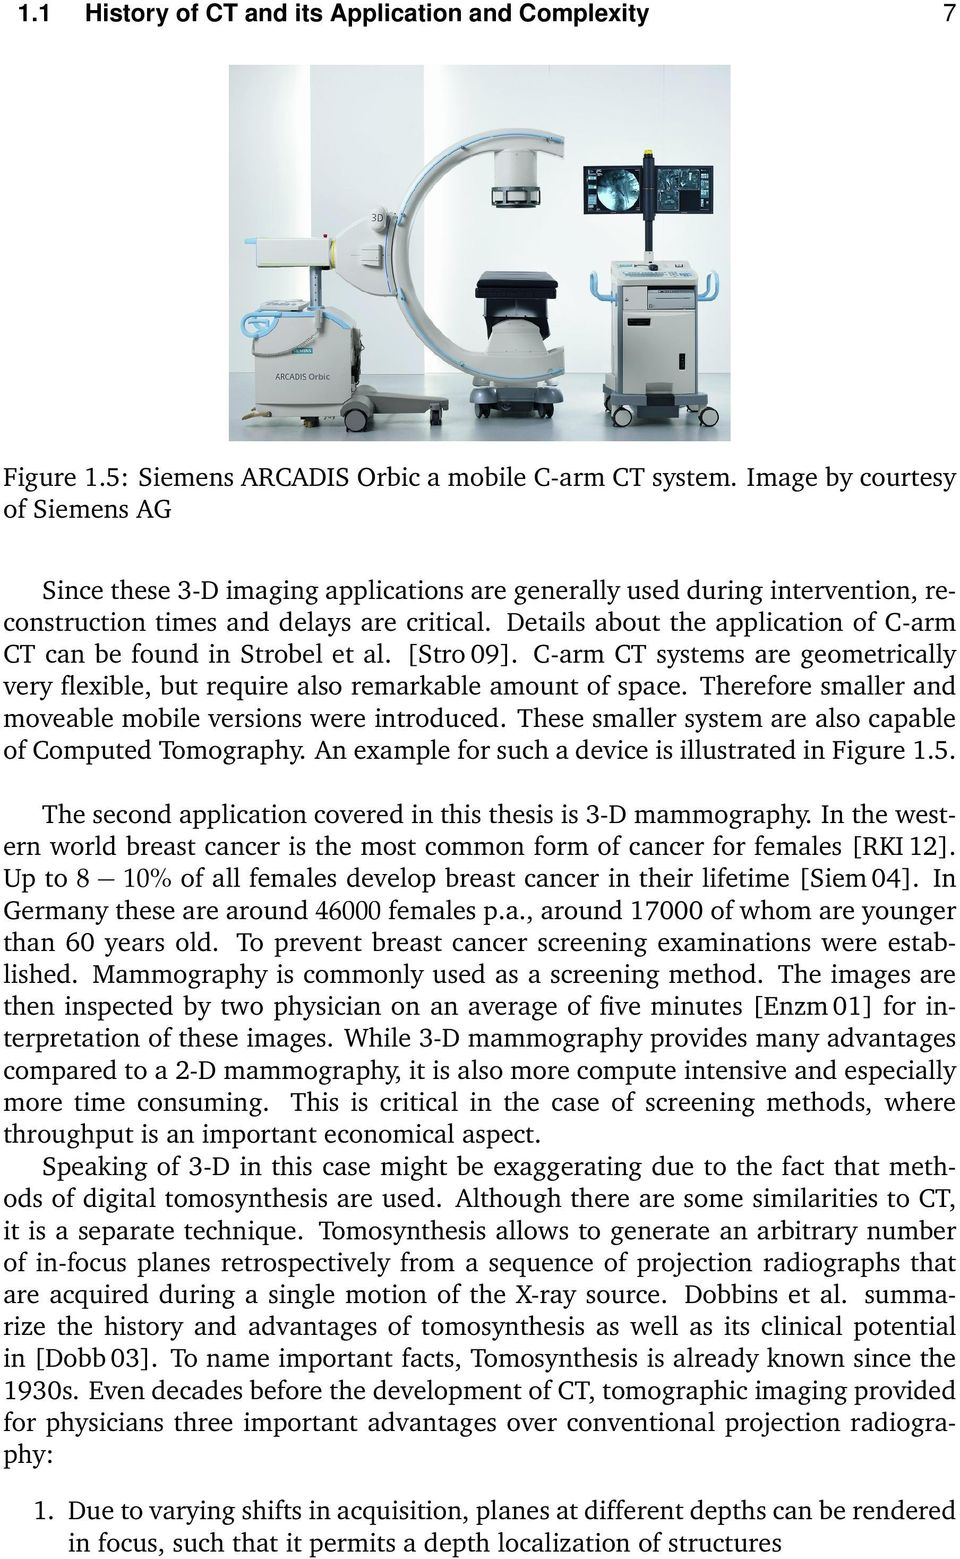 Details about the application of C-arm CT can be found in Strobel et al. [Stro 09]. C-arm CT systems are geometrically very flexible, but require also remarkable amount of space.